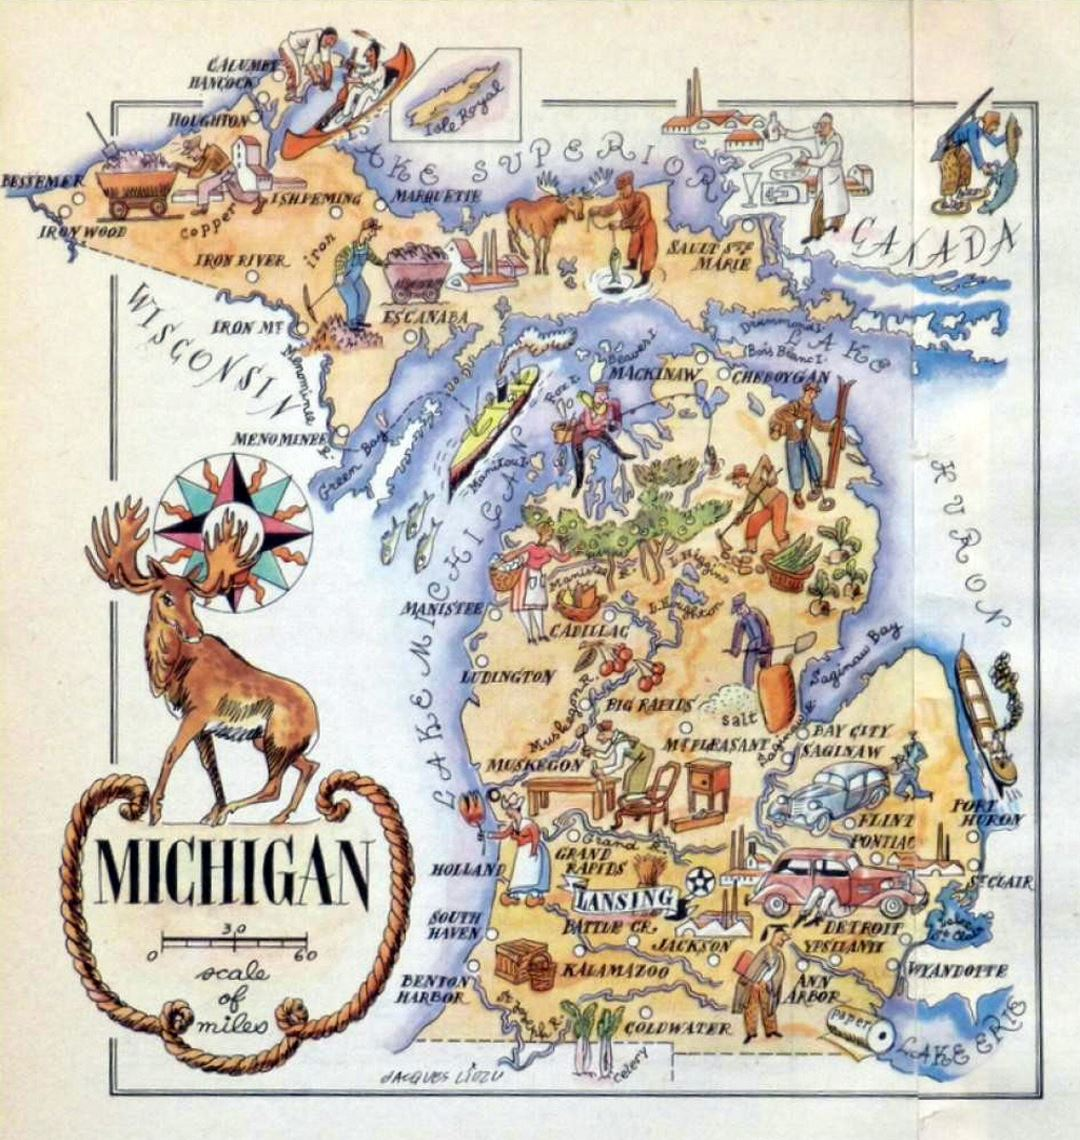 Old Illustrated Travel Map Of Michigan State 1946 Michigan State - Us-map-michigan-state